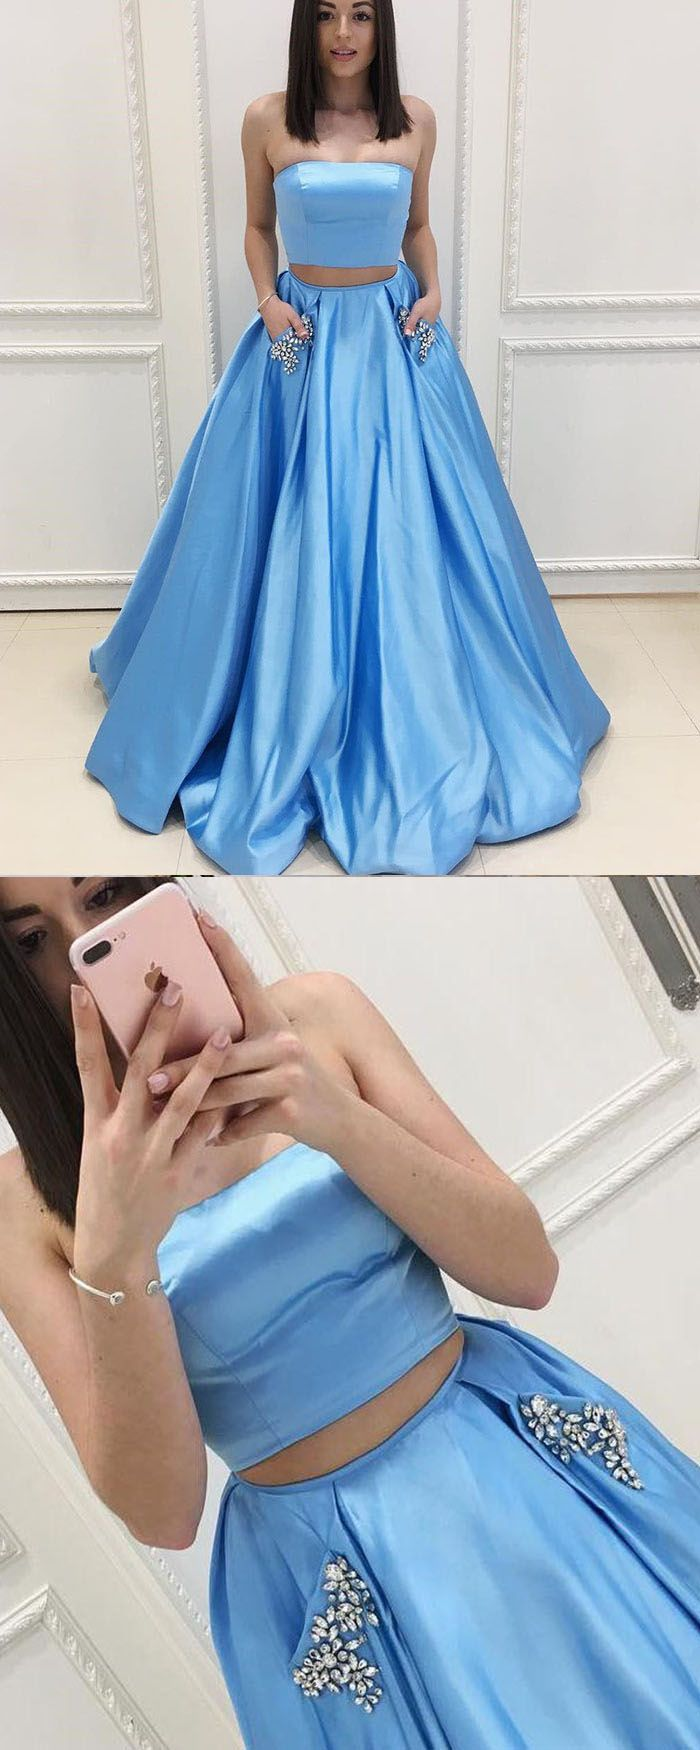 Strapless Sky Blue Two Piece Satin Prom Dress With Beading Pockets Pm1405 Strapless Prom Dresses Prom Dresses Two Piece Custom Made Prom Dress [ 1750 x 700 Pixel ]